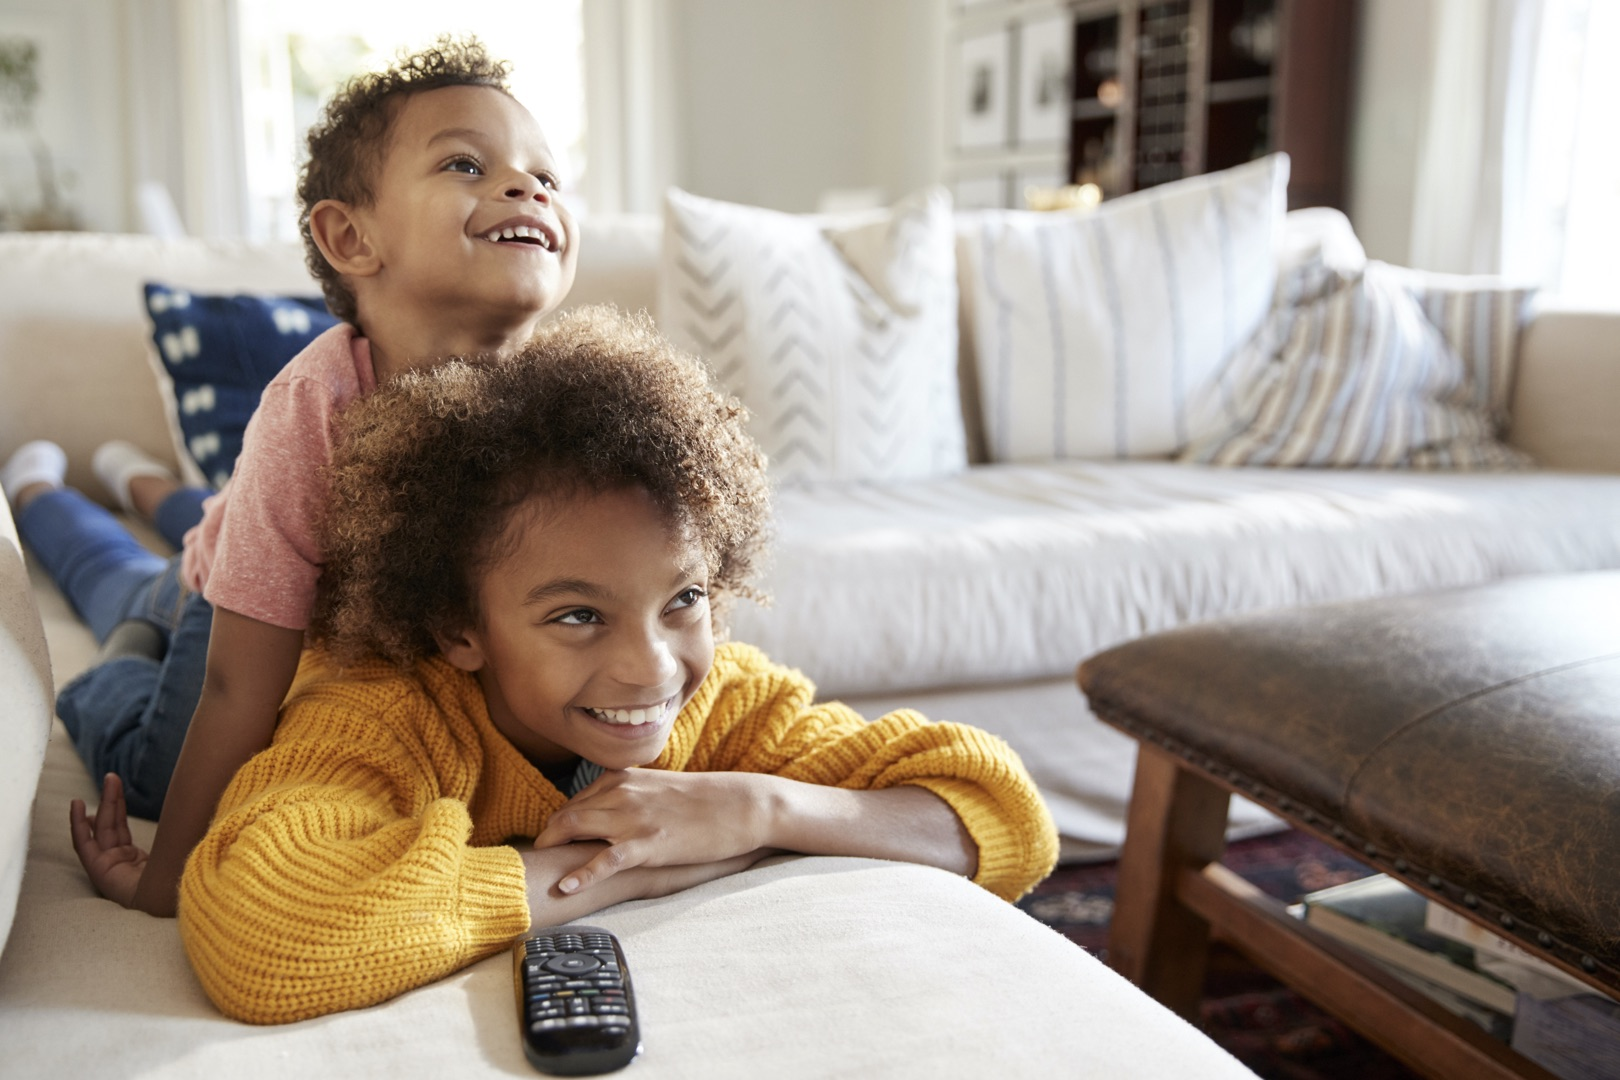 Want to enable apps on TV? Here are the options